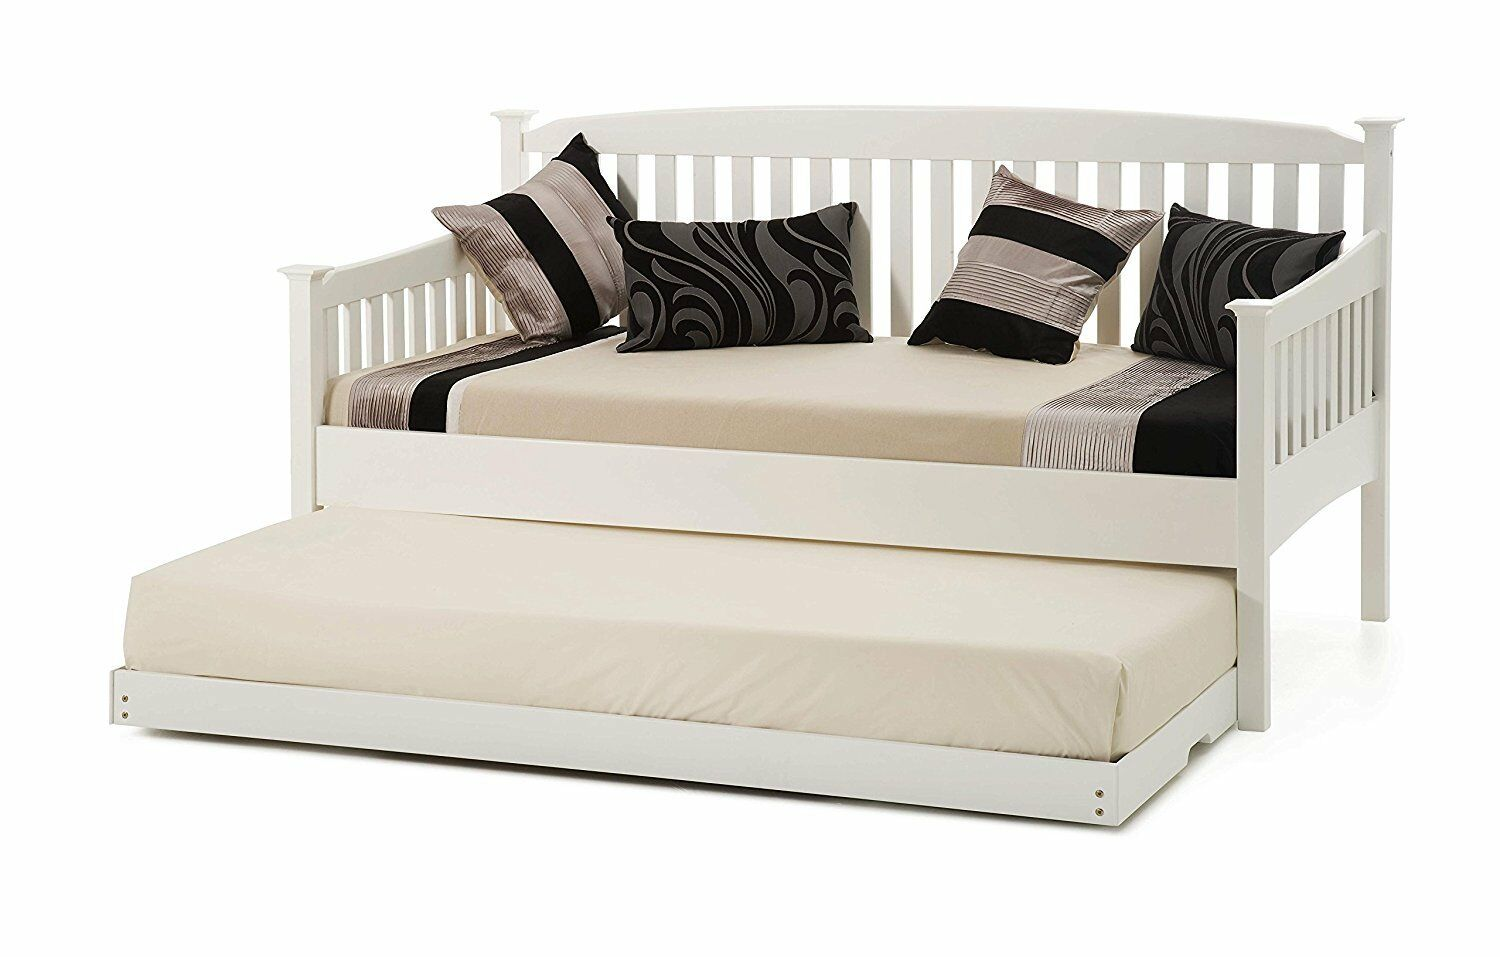 WHITE SHAKER STYLE 3FT SINGLE WOOD DAYBED WITH UNDER DAY BED GUEST TRUNDLE